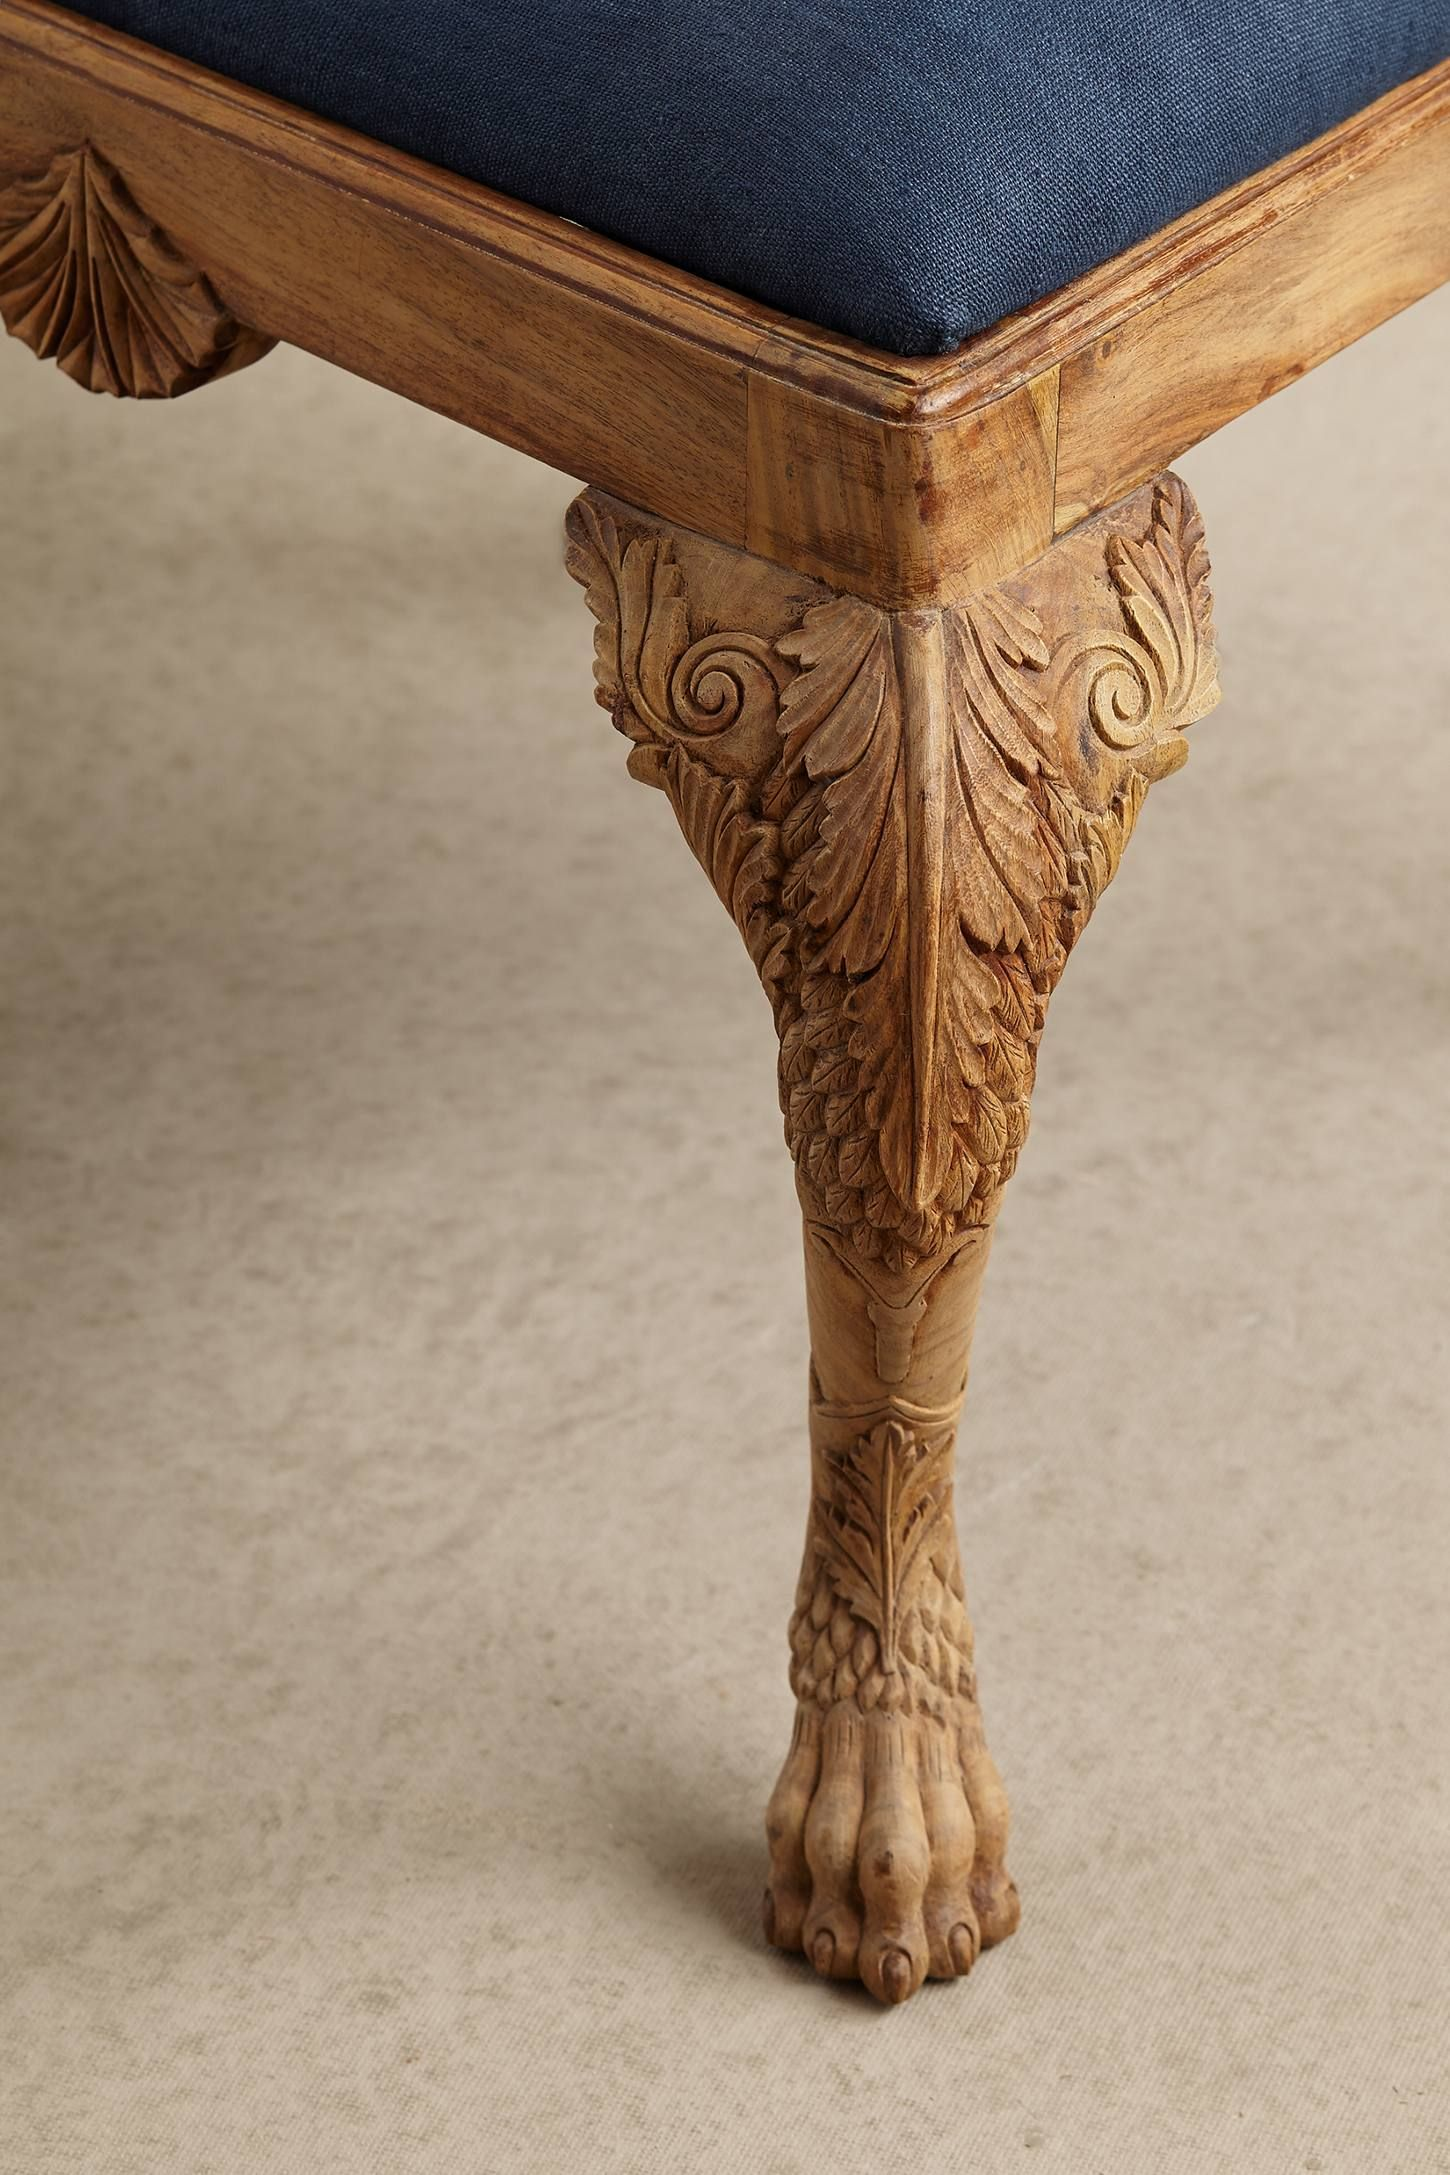 Handcarved Menagerie Dining Table Dining Chairs Carved